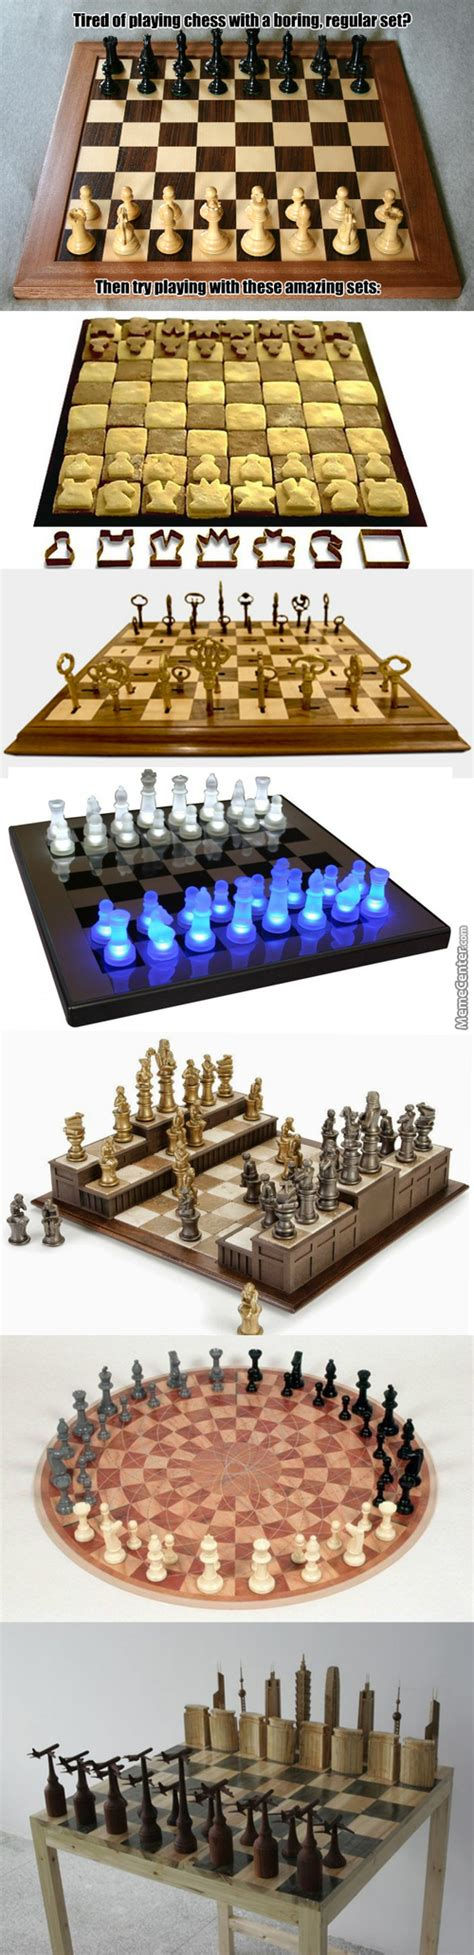 Chess memes best collection of funny chess pictures